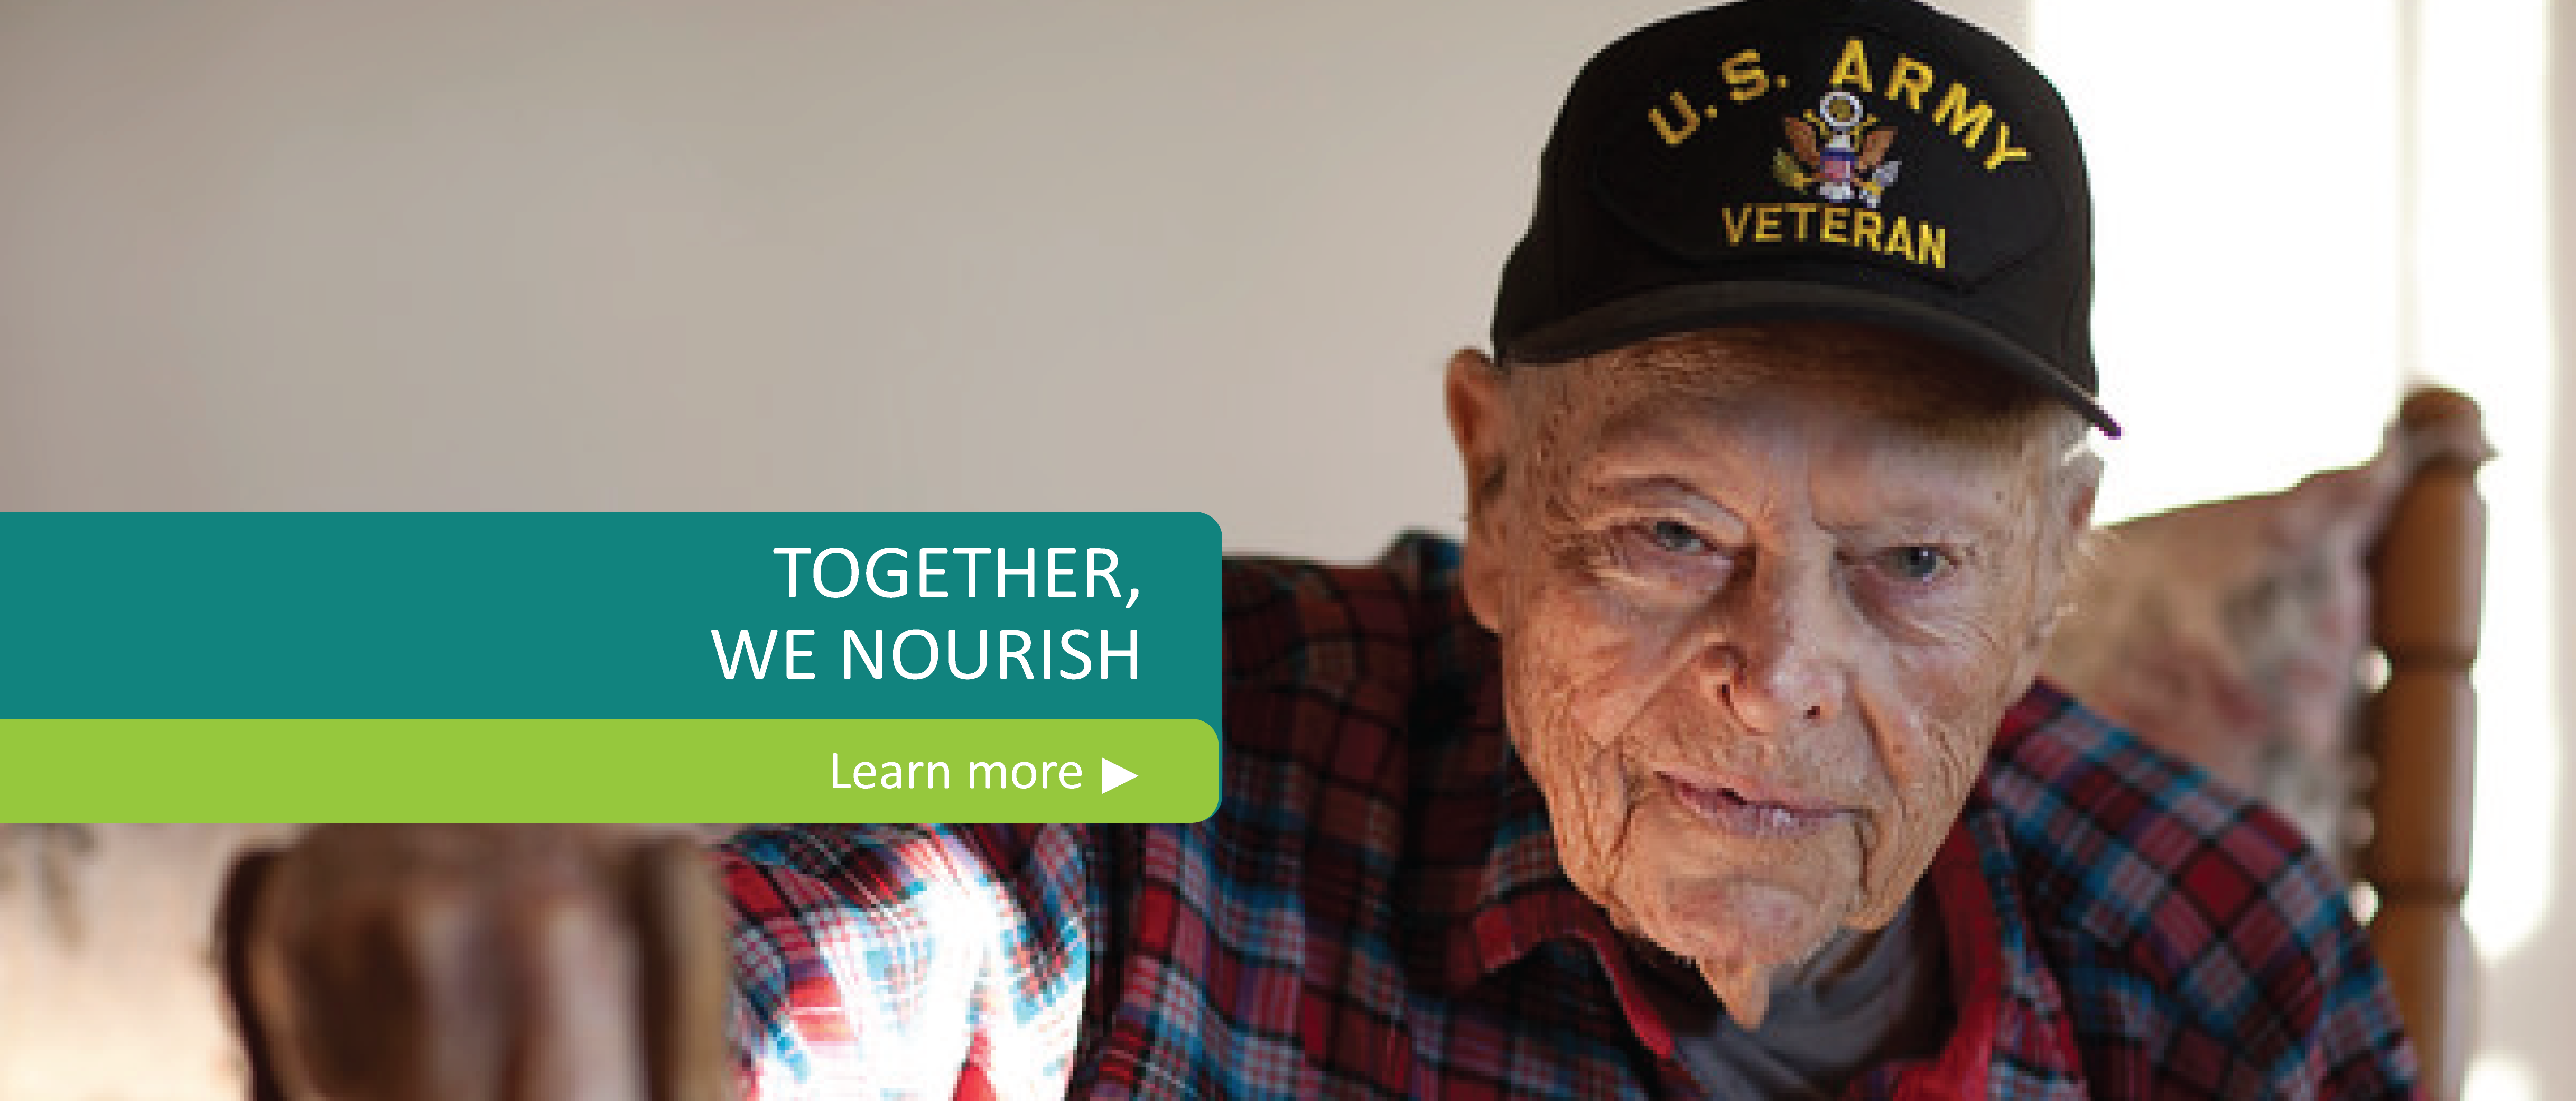 Together We Nourish_Meals On Wheels of Tampa-01